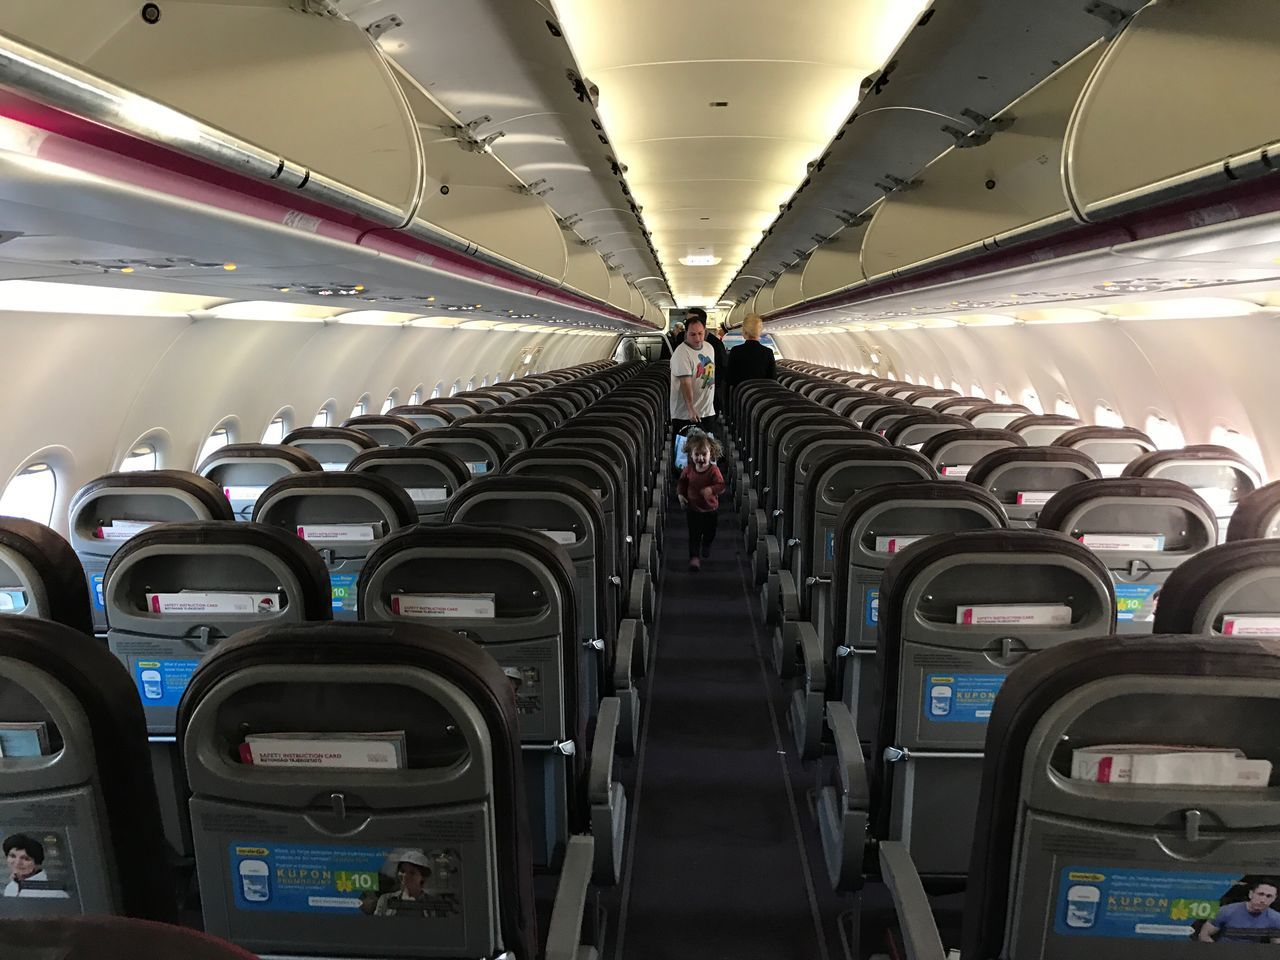 Toddler On The Plane Toddler  Plane Traveling Airplane Travel Indoors  Vehicle Seat No People Day